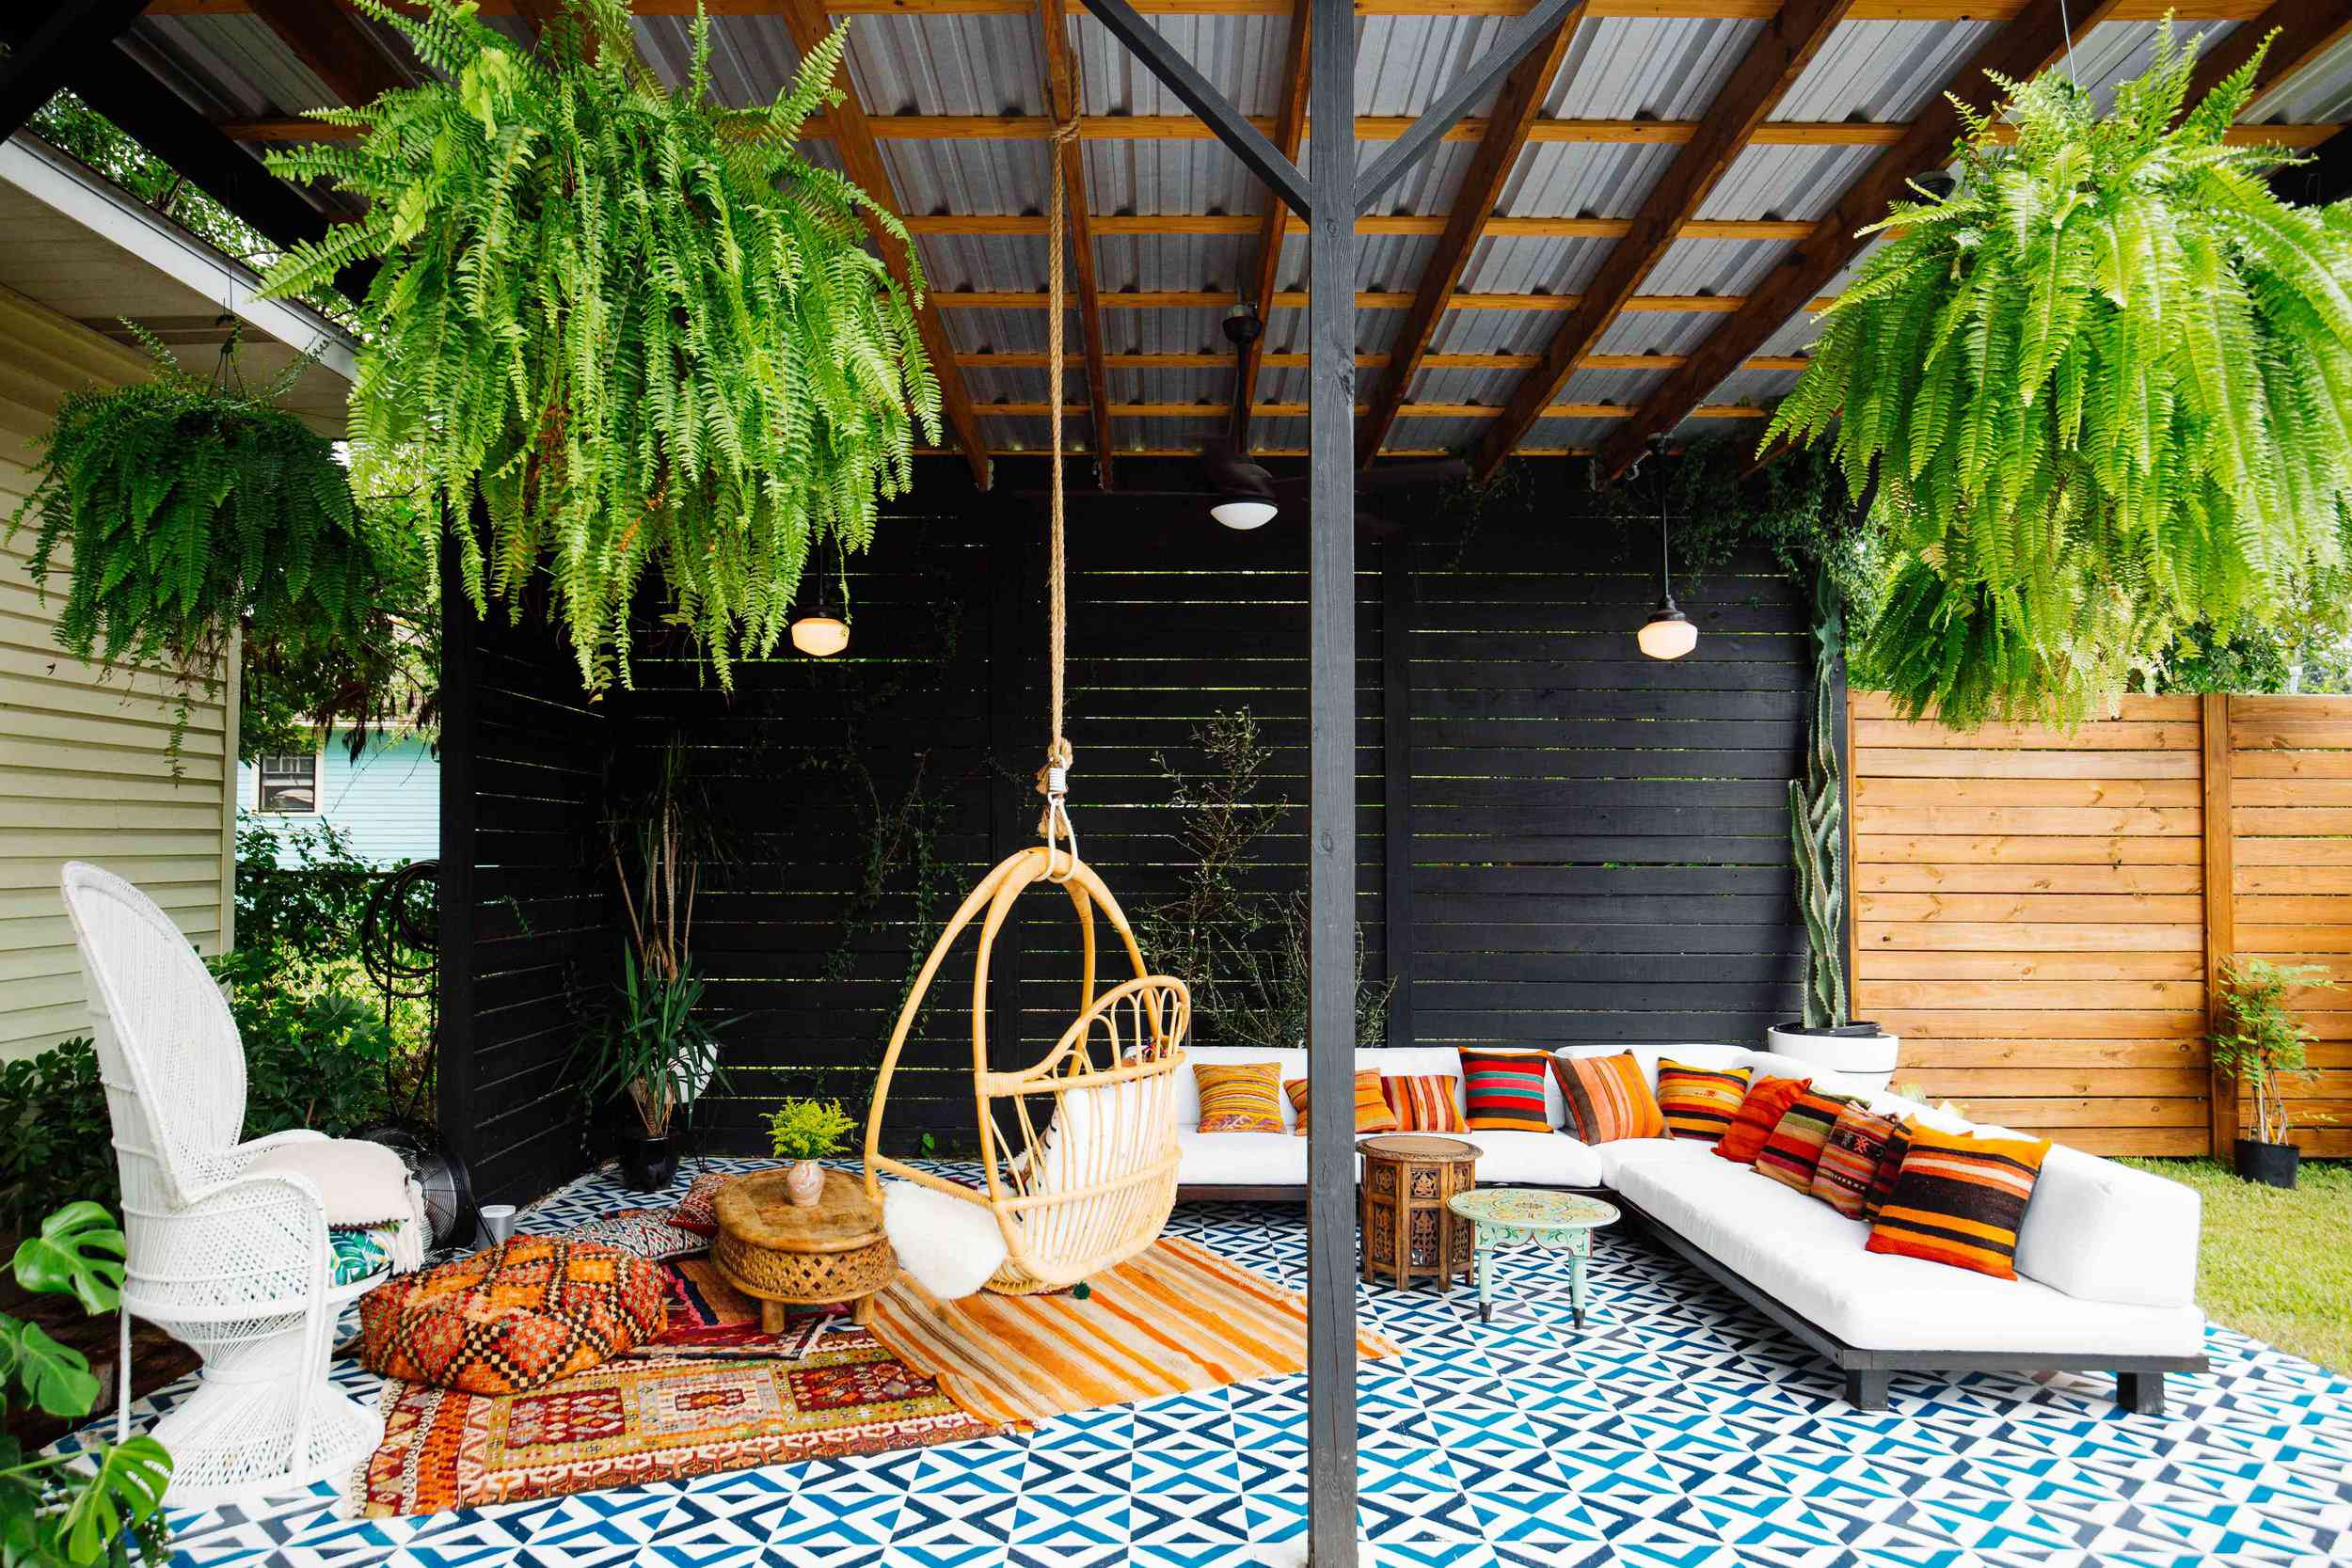 Dabito's covered outdoor patio in New Orleans features hanging ferns, a swing chair, and a stenciled tile-look floor